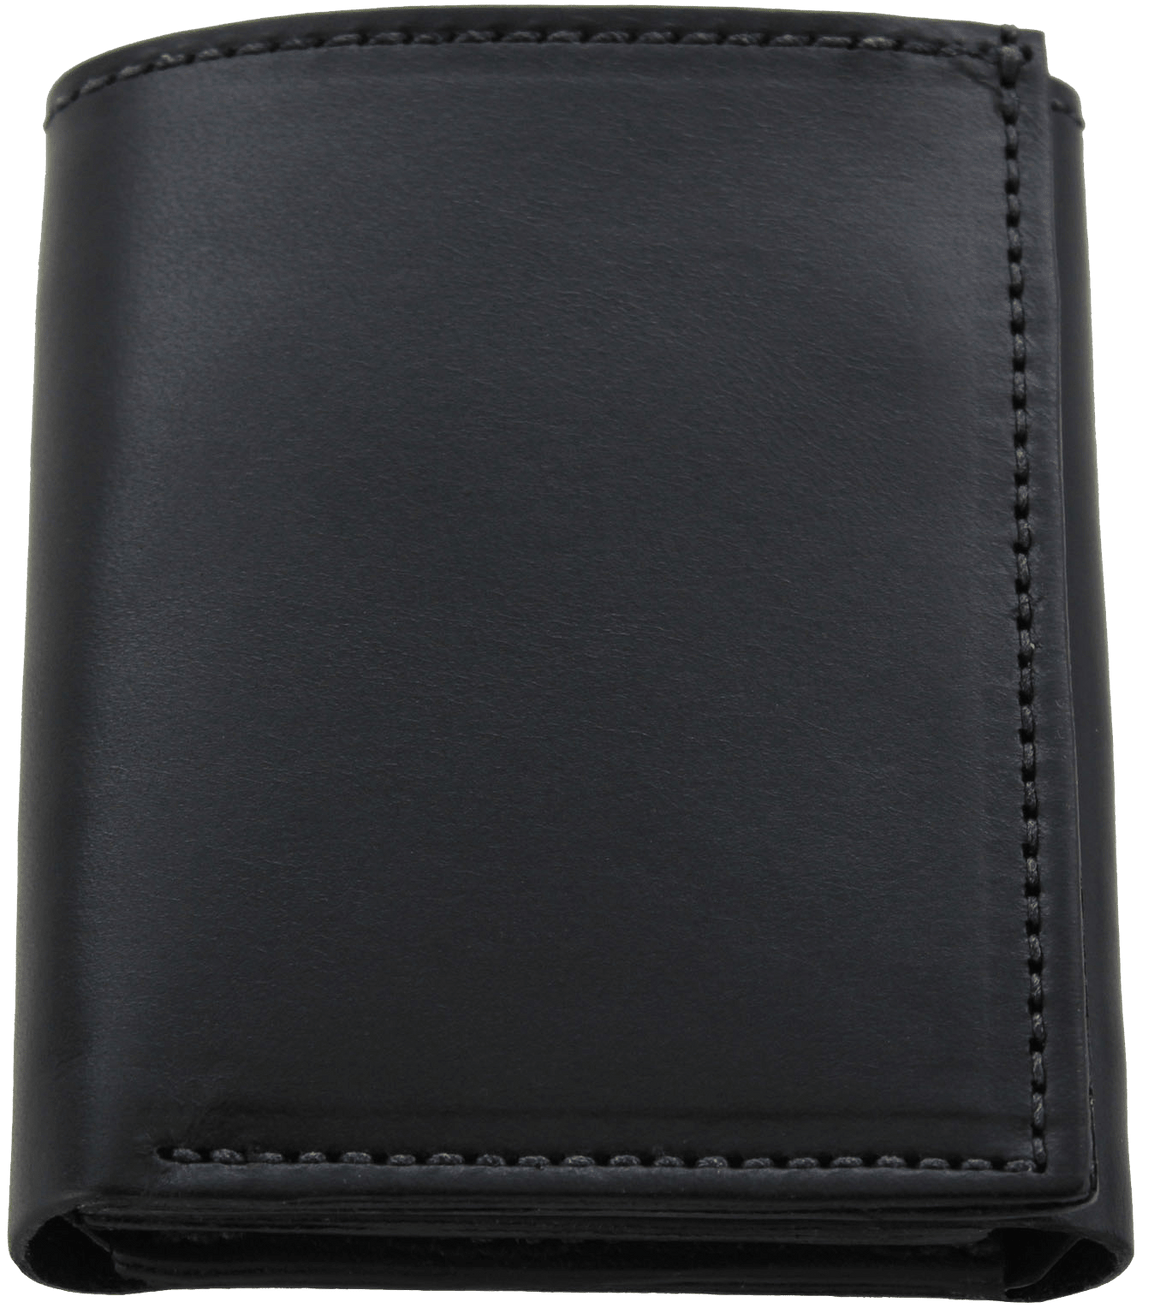 Black Premium Bridle Leather USA Made Trifold Wallet With ID Window